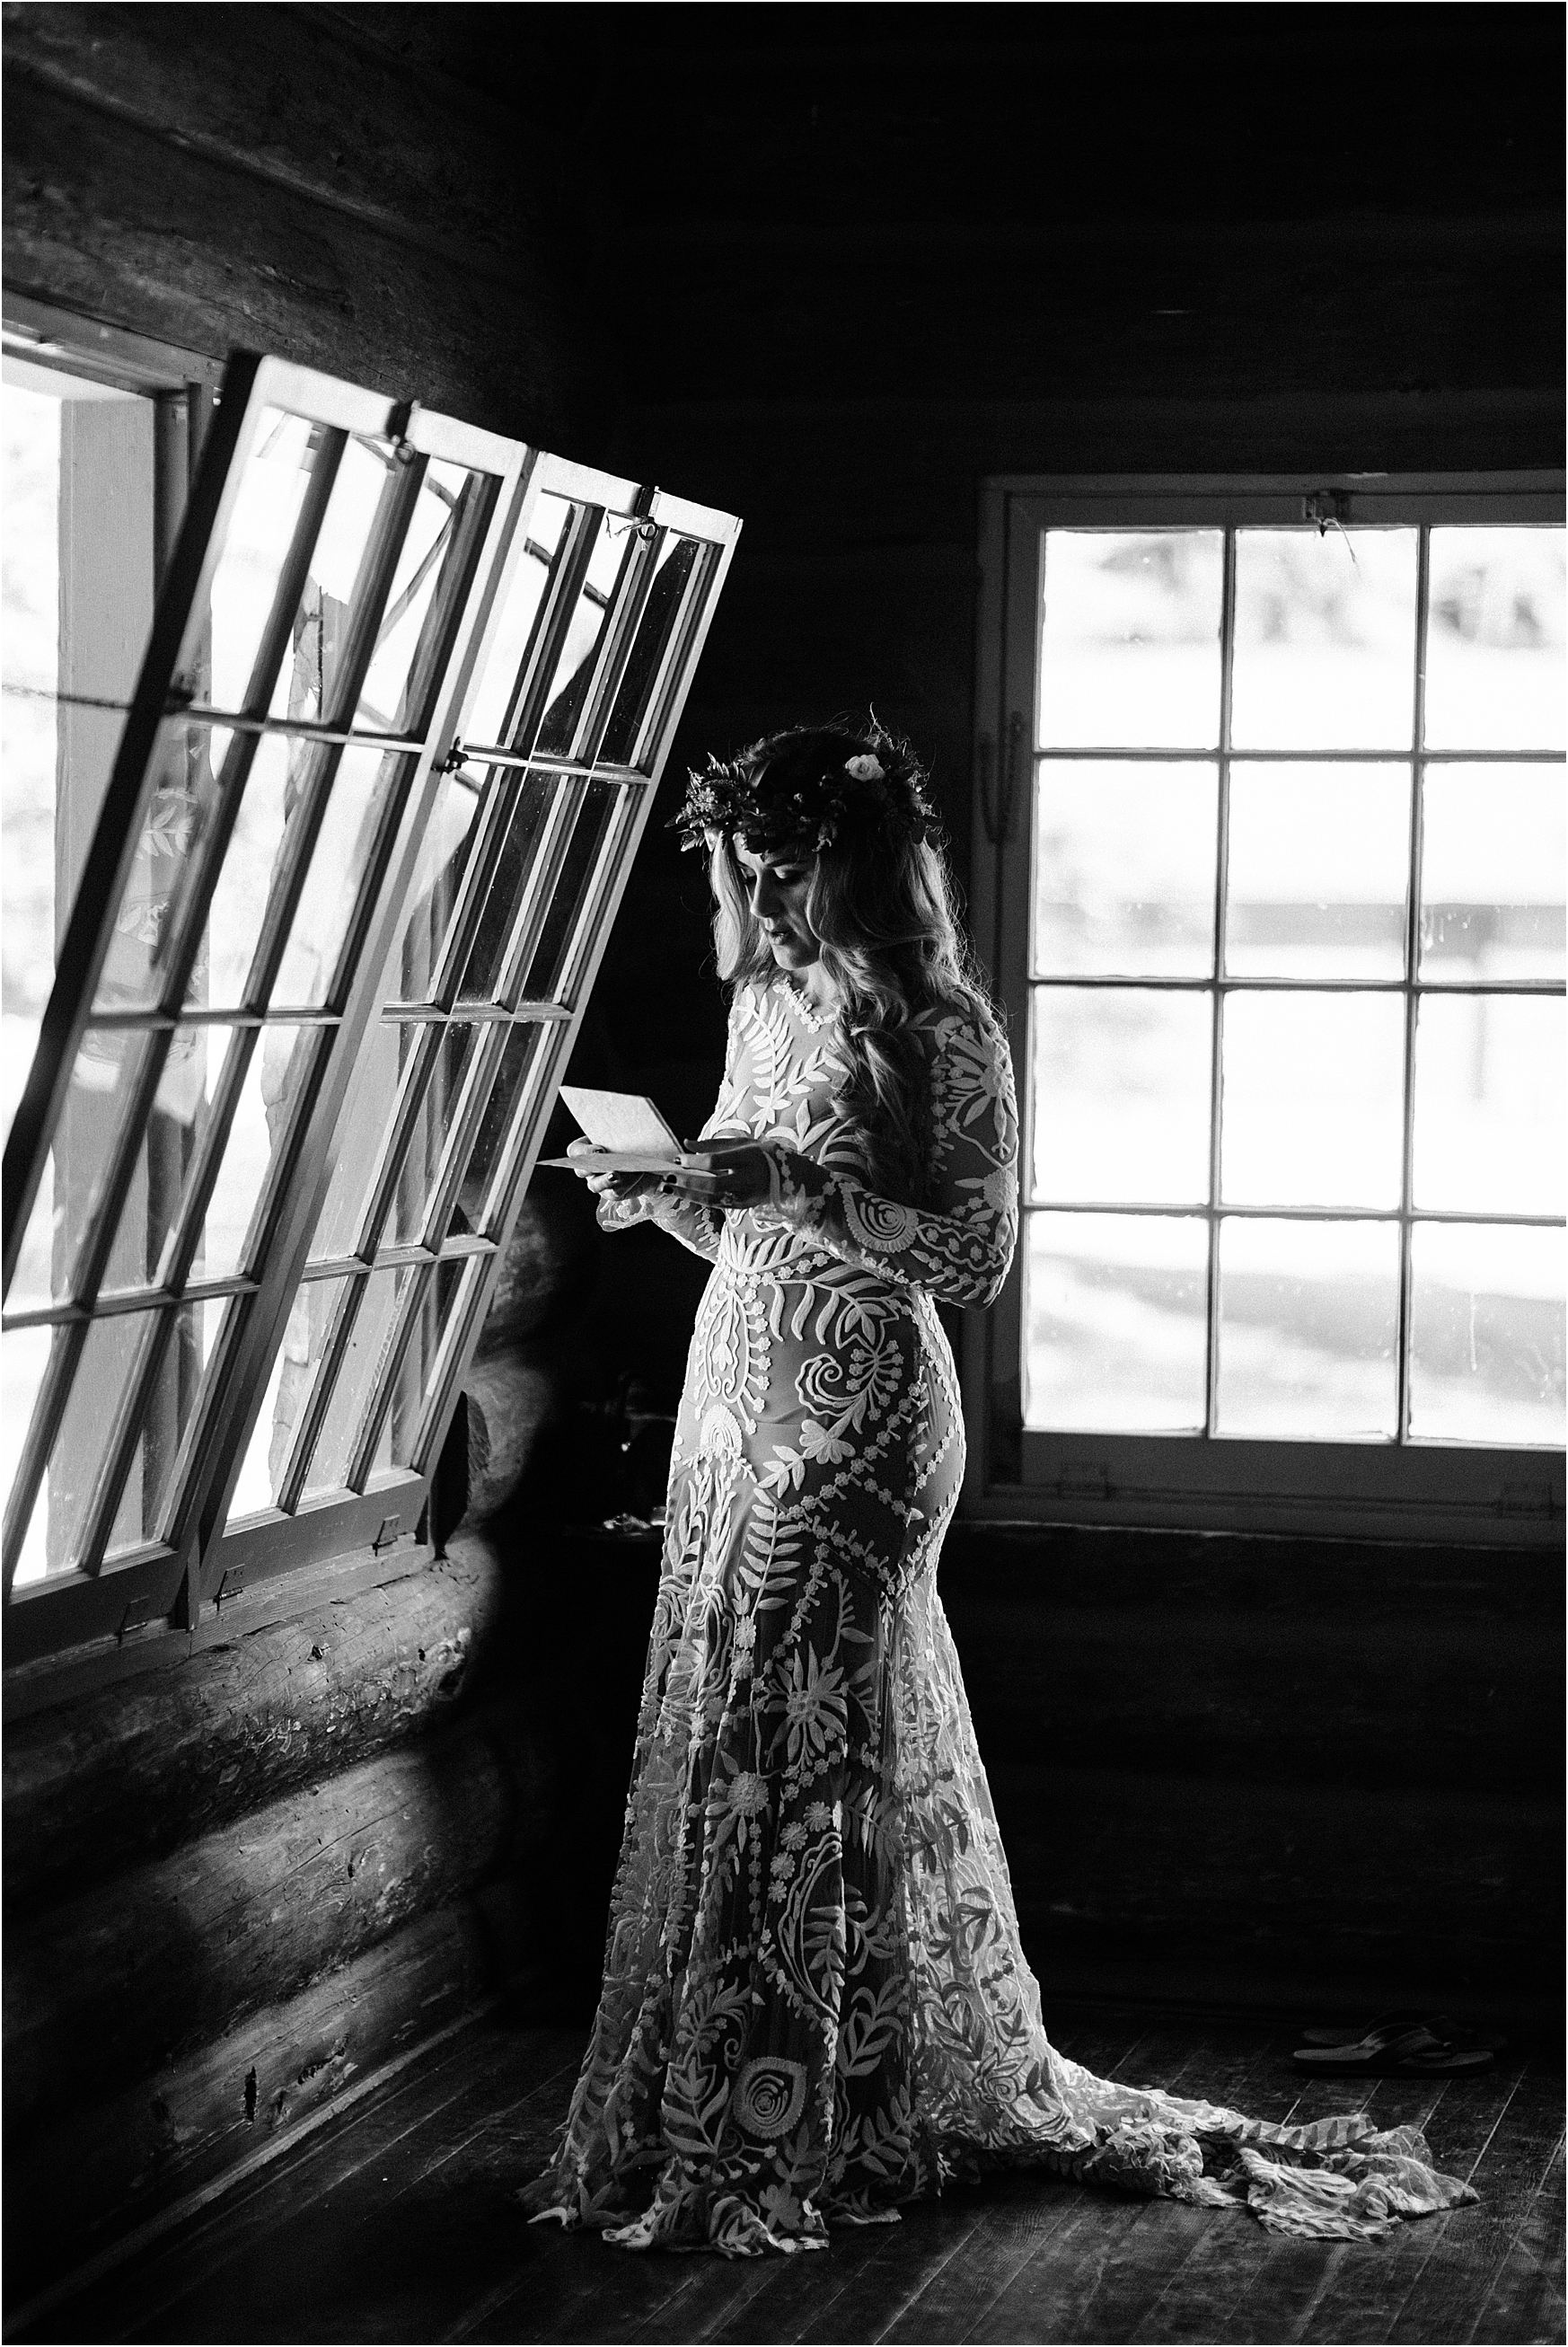 Bride rehearsing her vows at Cassy & Viva's bohemian Oregon destination wedding at Camp Lane. Image by Forthright Photo.